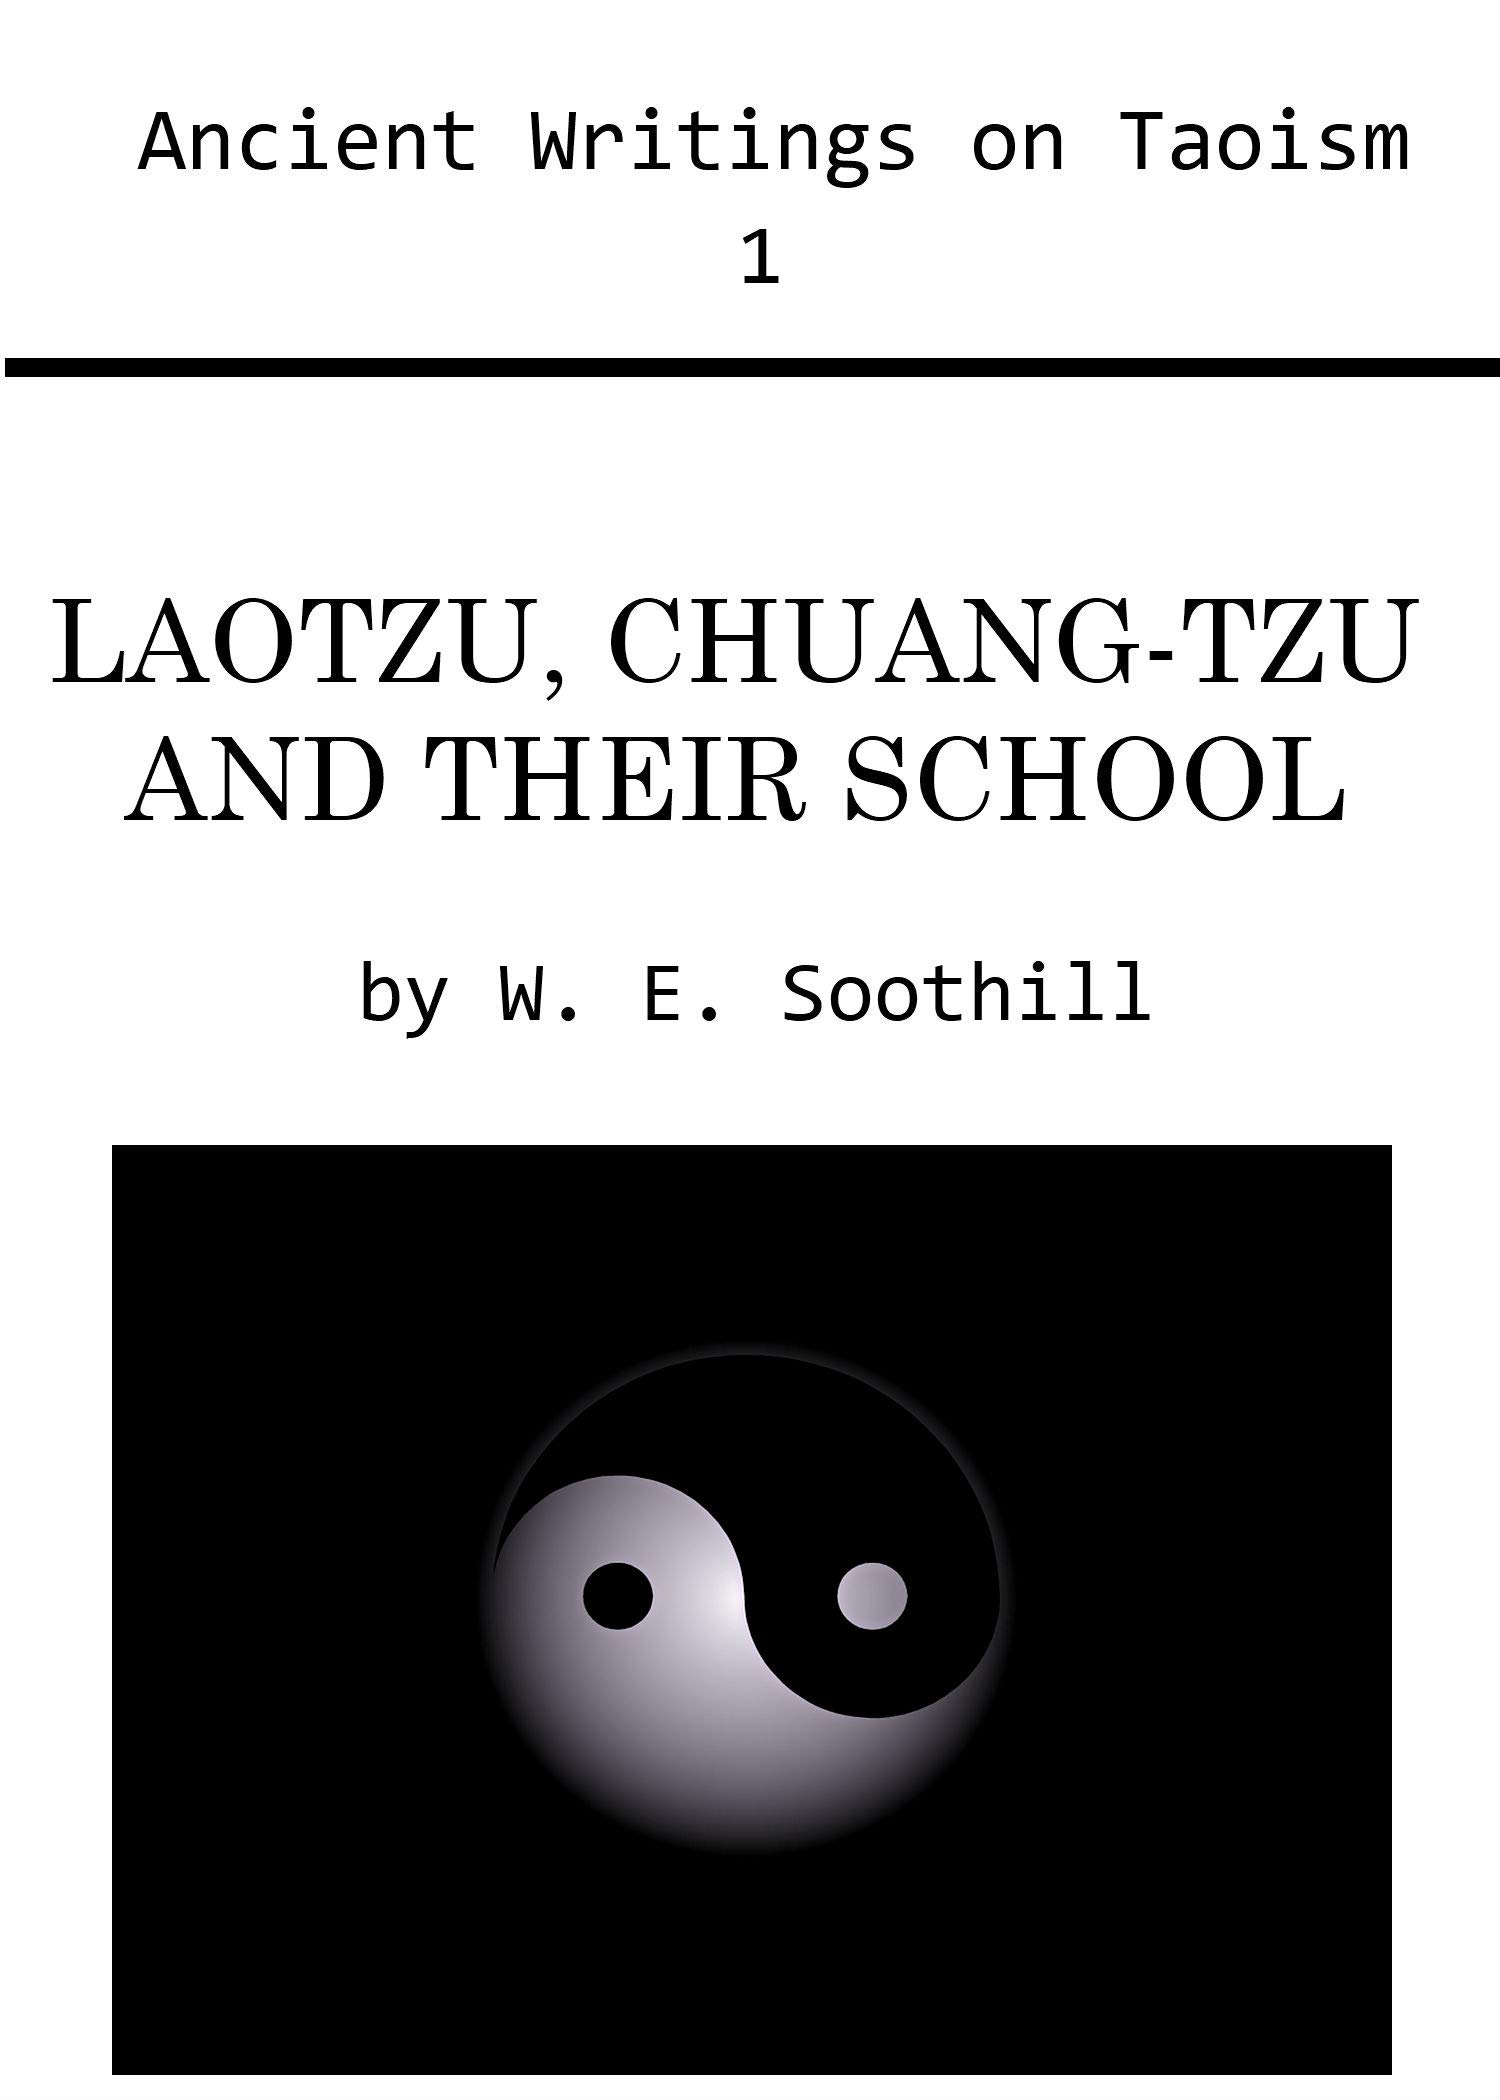 Laotzu, Chuang-Tzu, and Their School (Ancient Writings on Taoism Book 1)